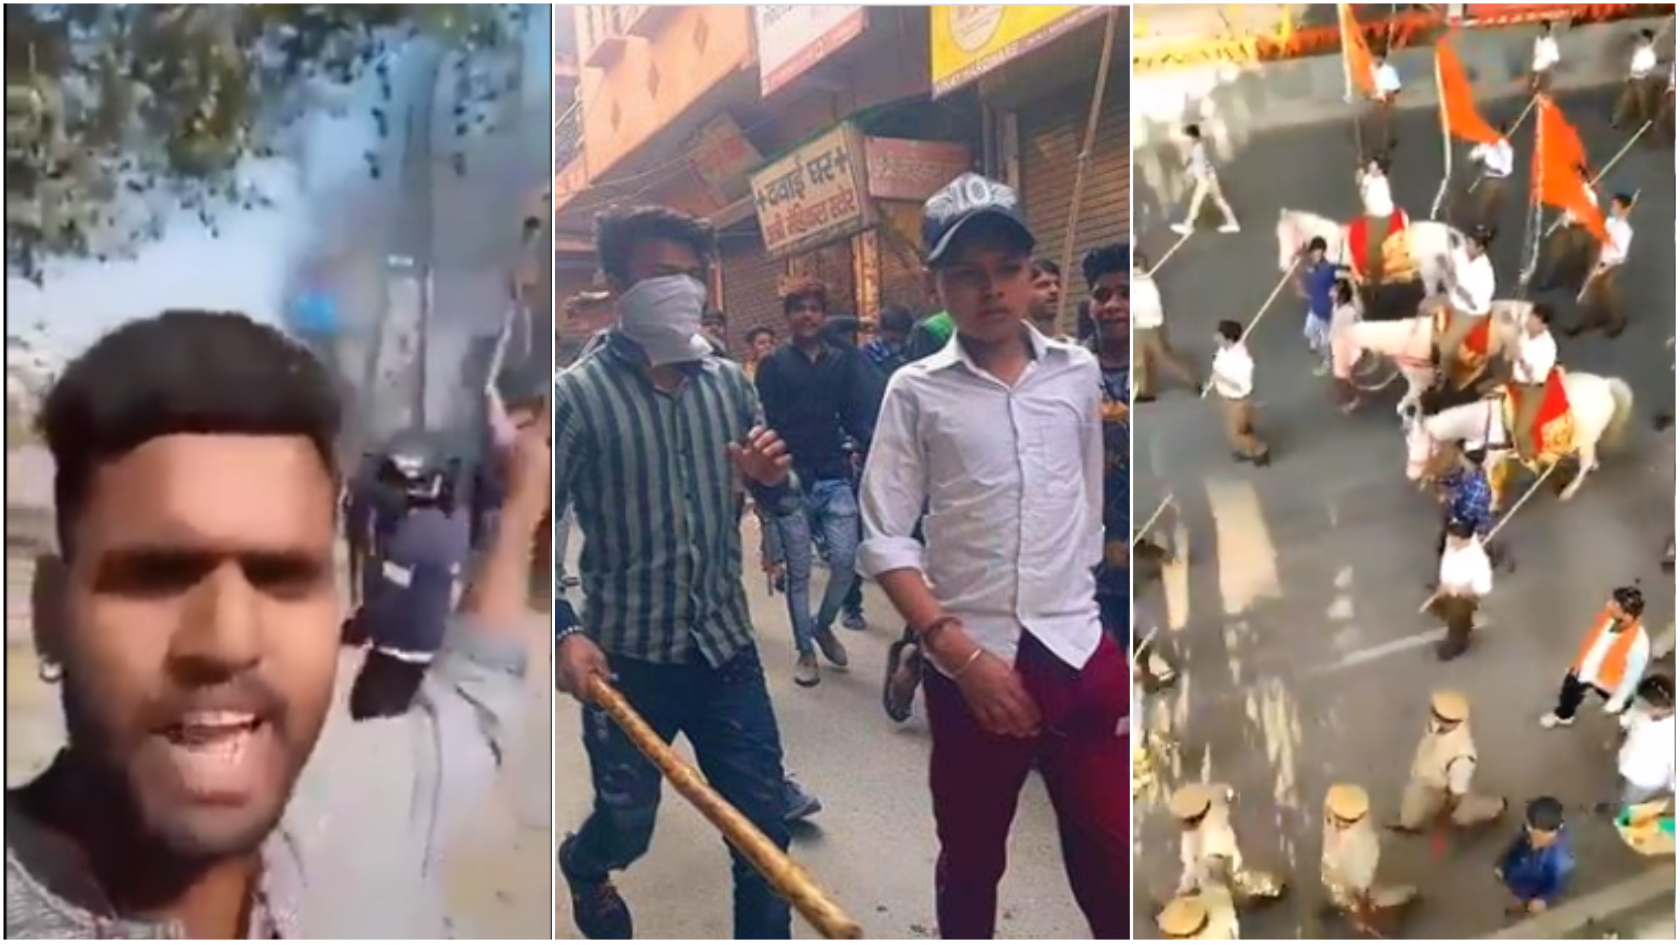 Screengrabs from amateur videos showing Hindu participants in riots in Delhi that started on February 23, 2020.